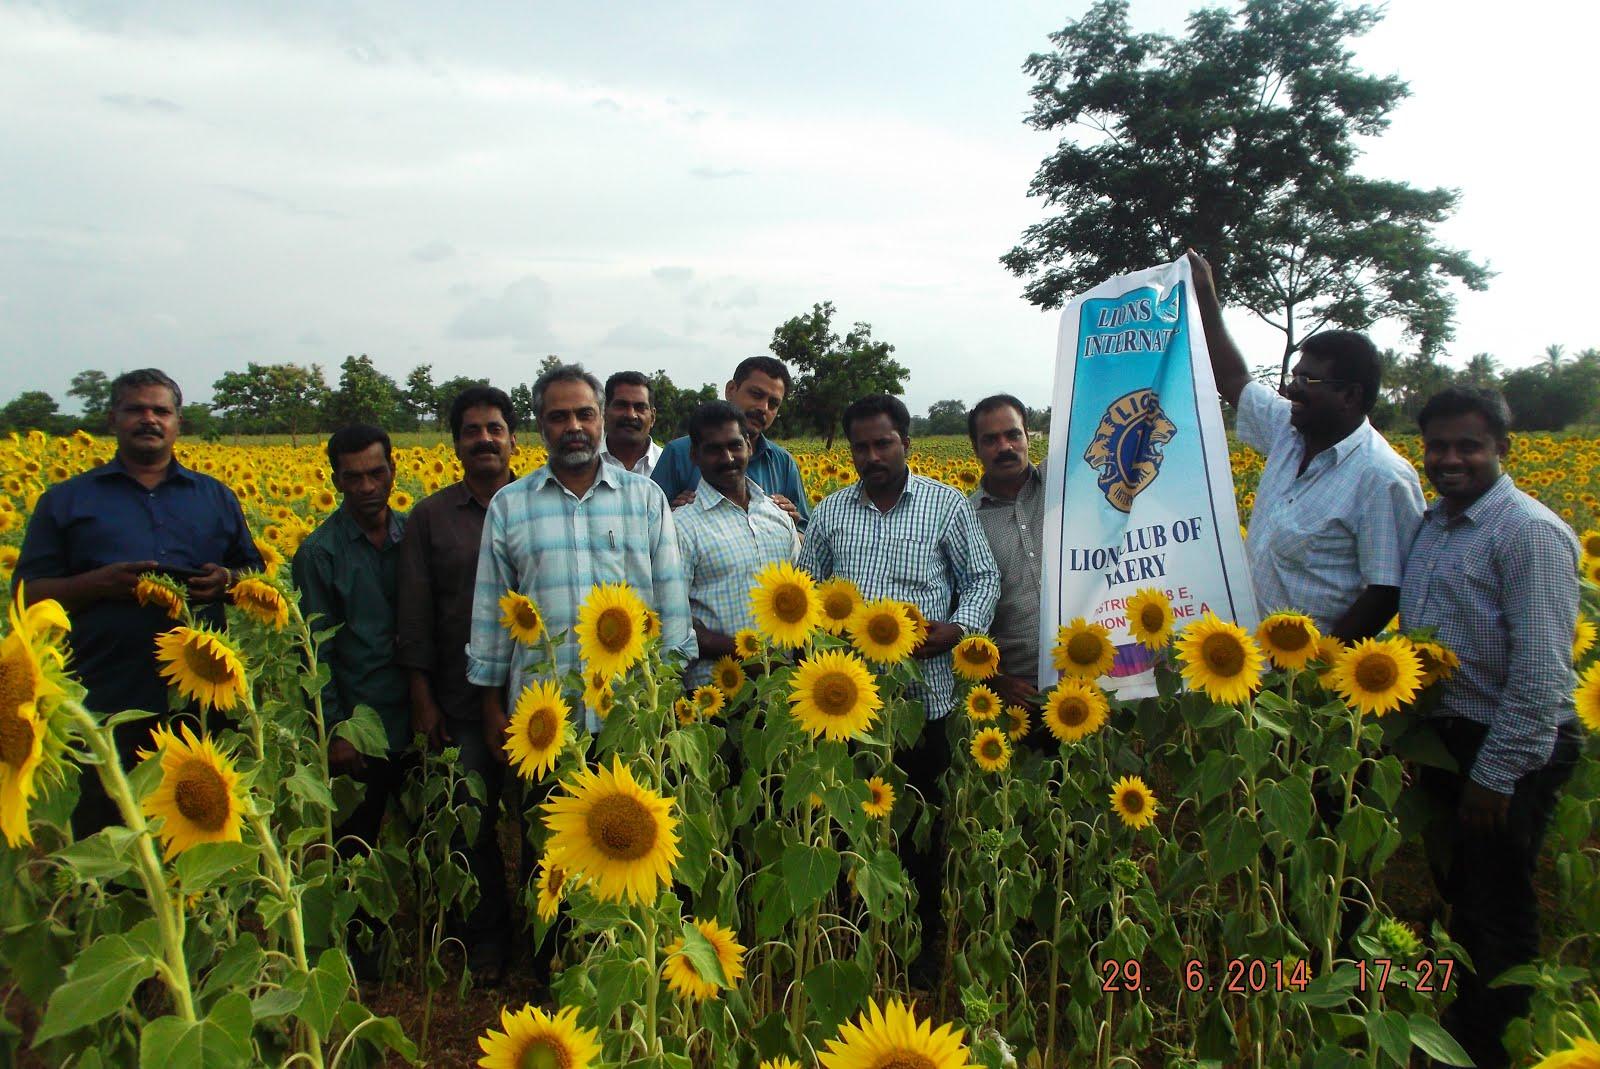 LIONS CLUB OF VAKERY